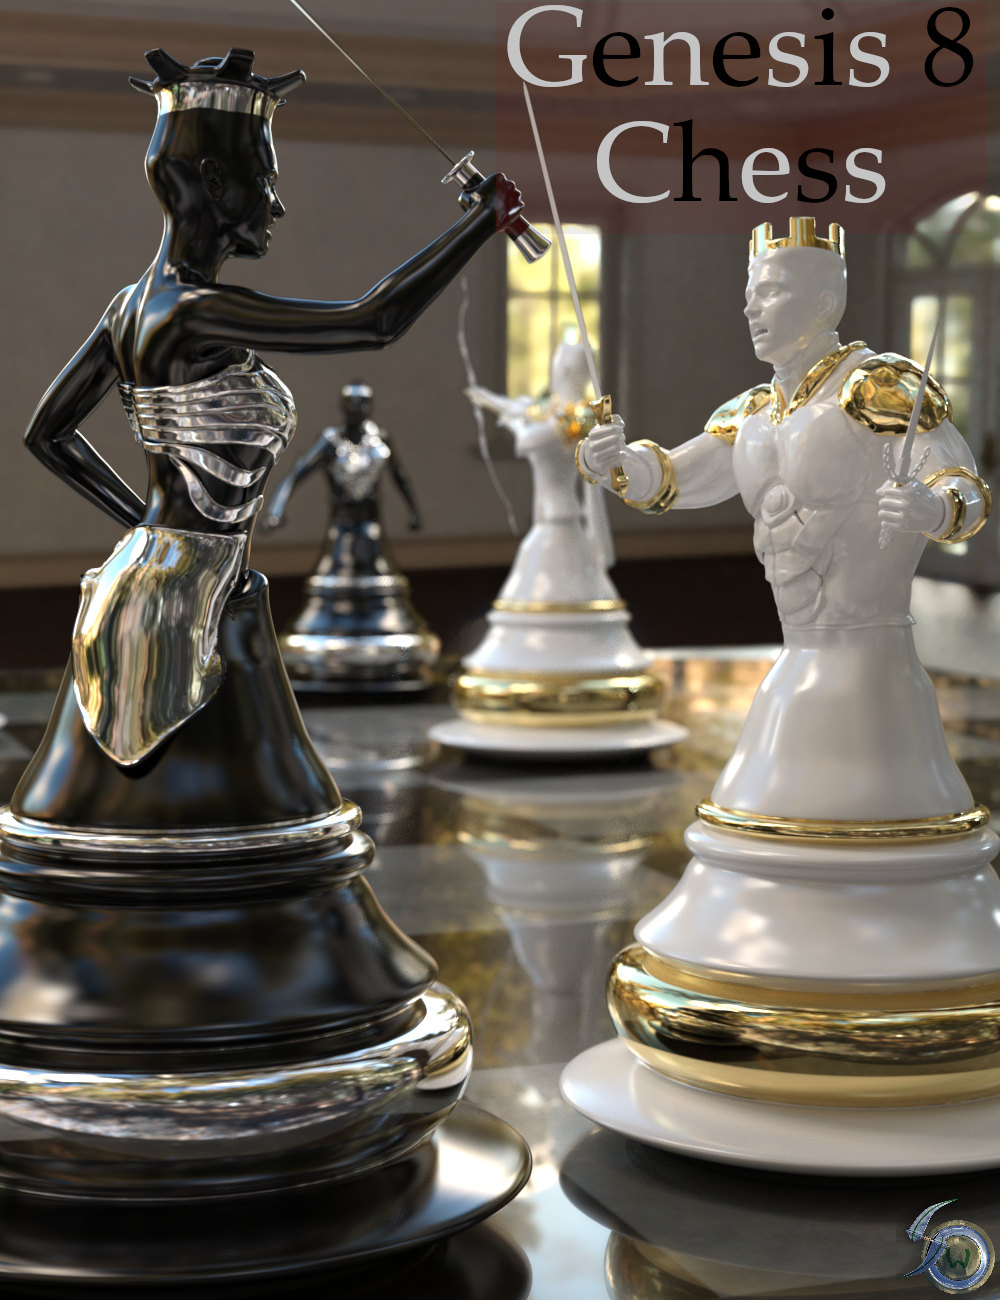 Chess for Genesis 8 by: Silent Winter, 3D Models by Daz 3D